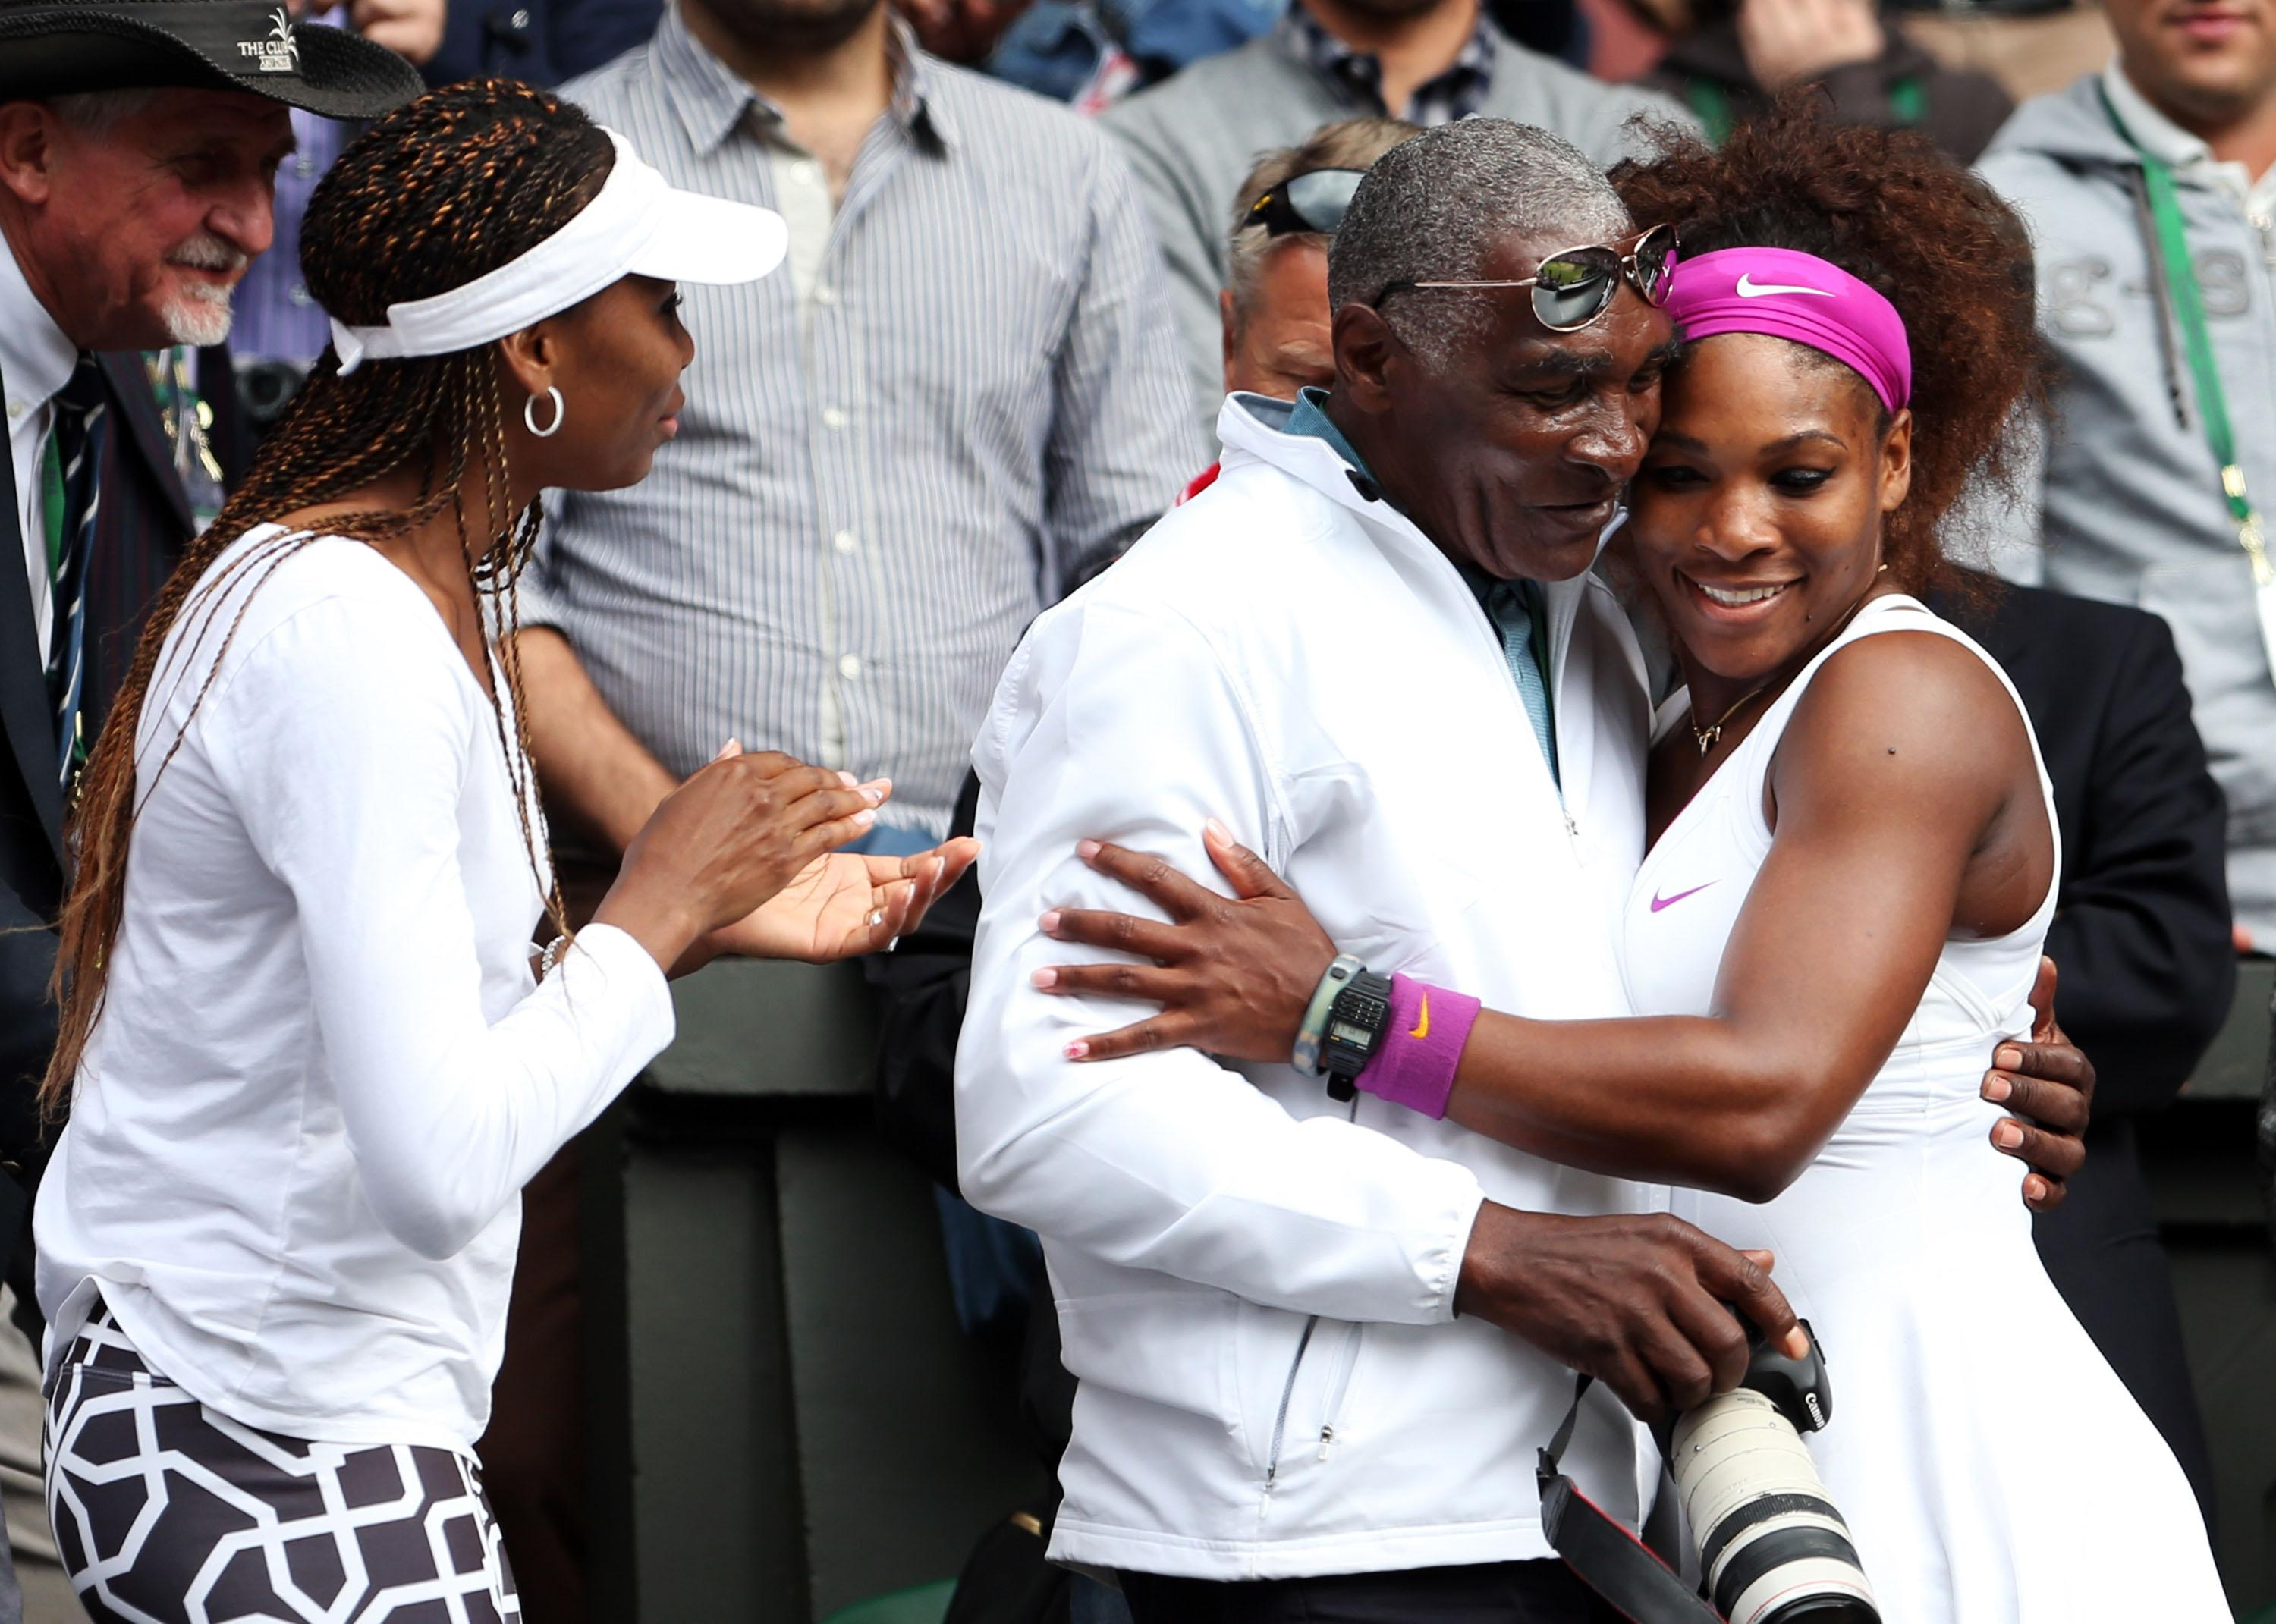 Serena Williams, pictured hugging her father Richard Williams, with sister Venus to the left, is a 23-time Grand Slam winner